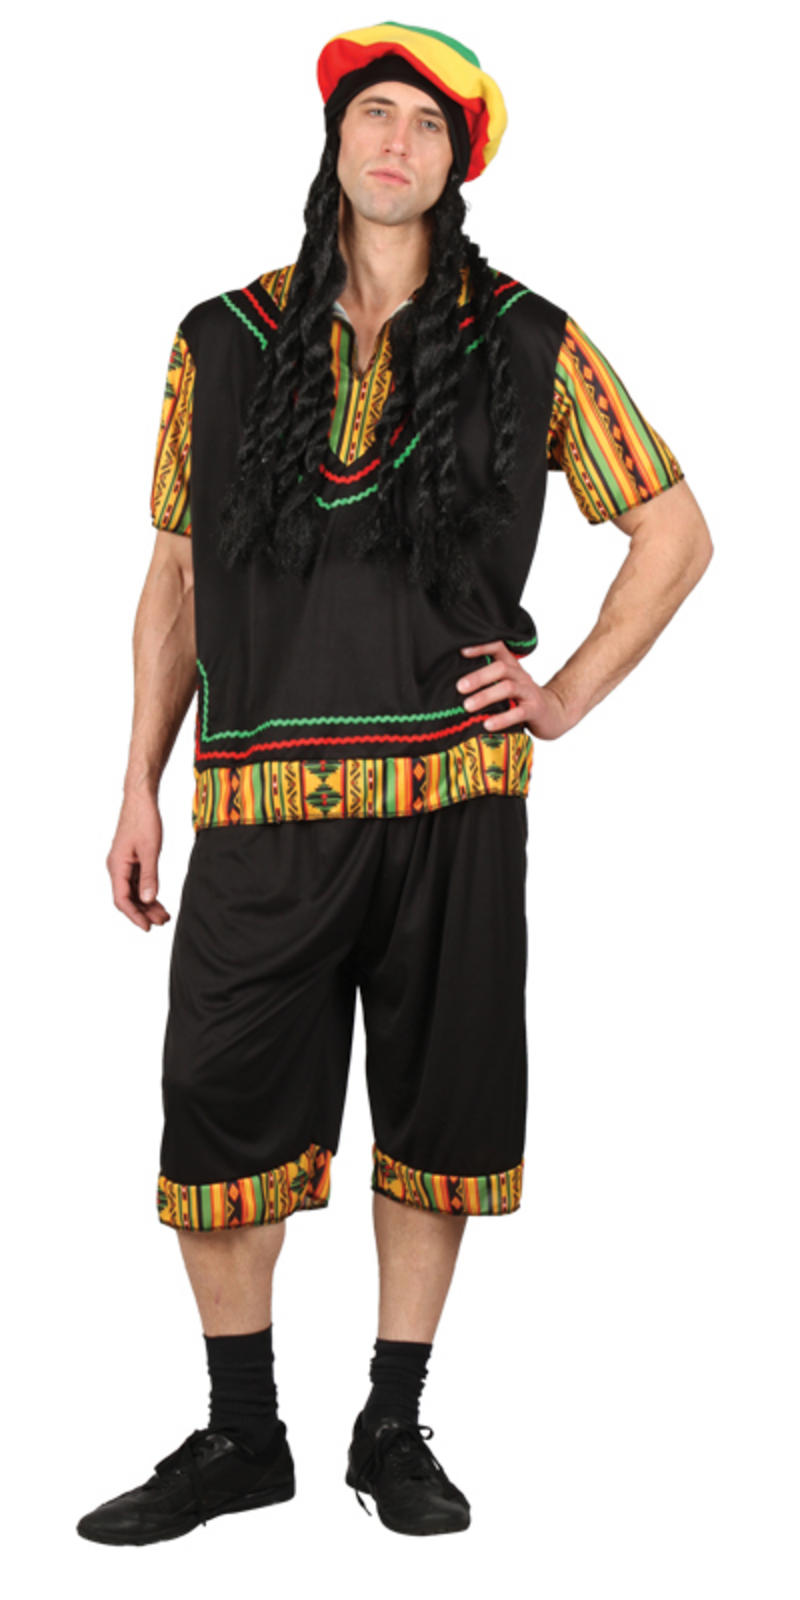 Reggae Concert Outfit Ideas Related Keywords - Reggae Concert Outfit Ideas Long Tail Keywords ...